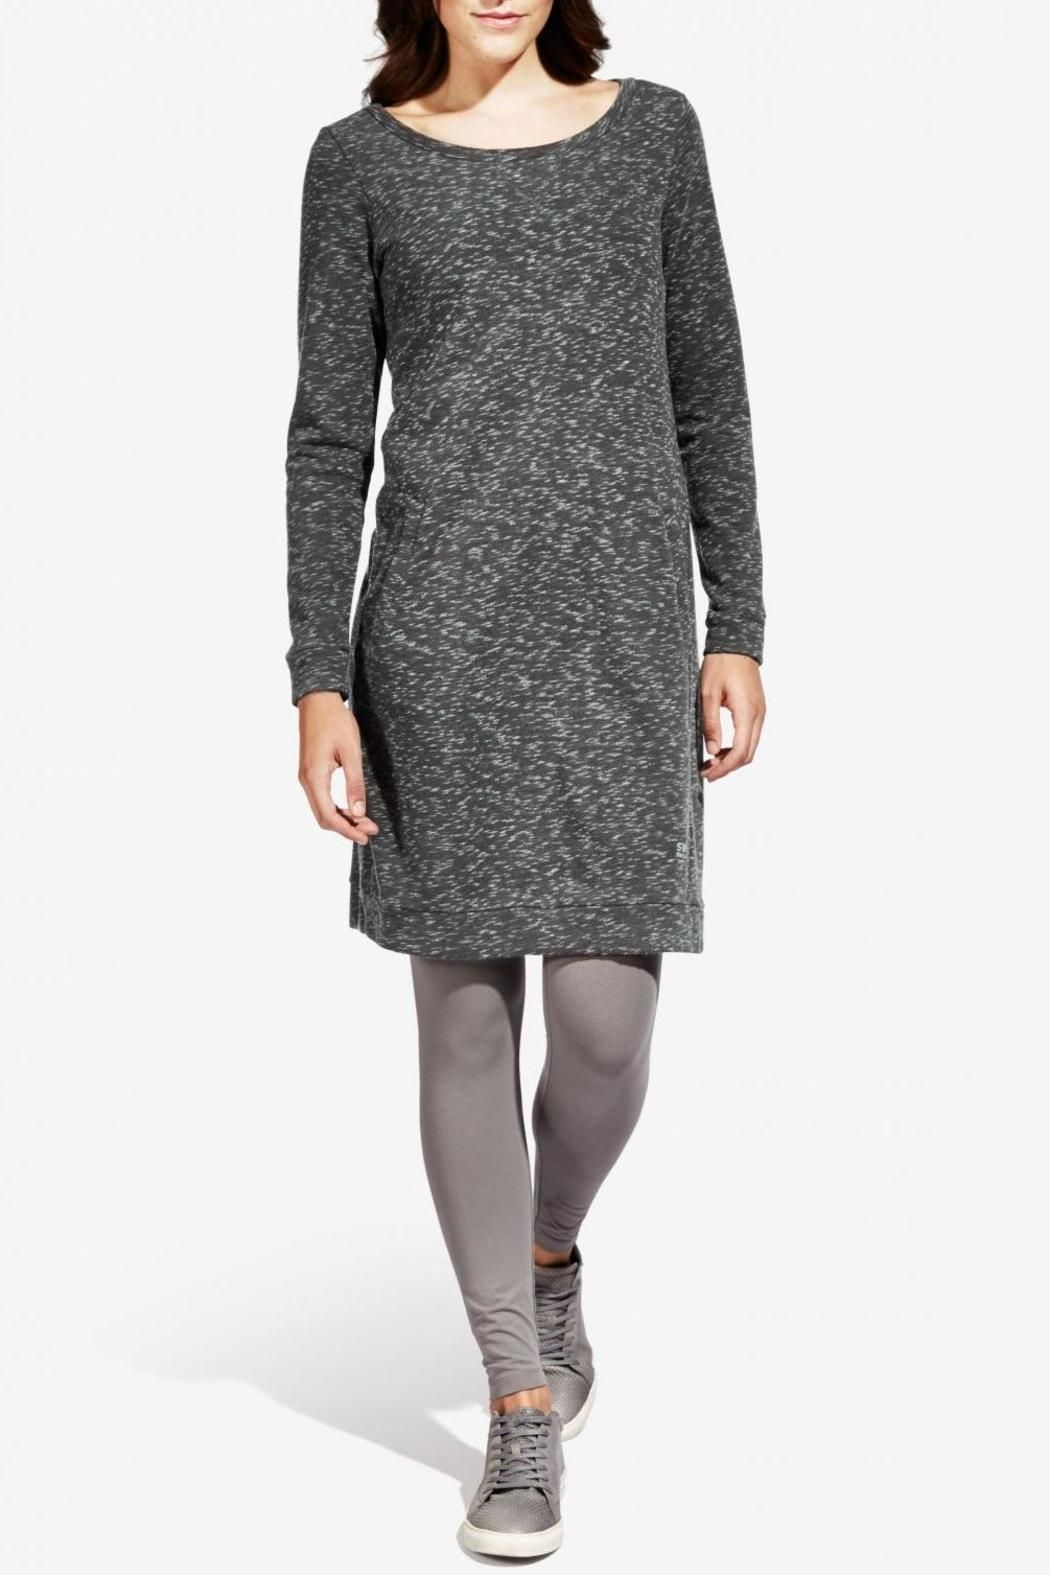 long tunic tops to wear with leggings canada